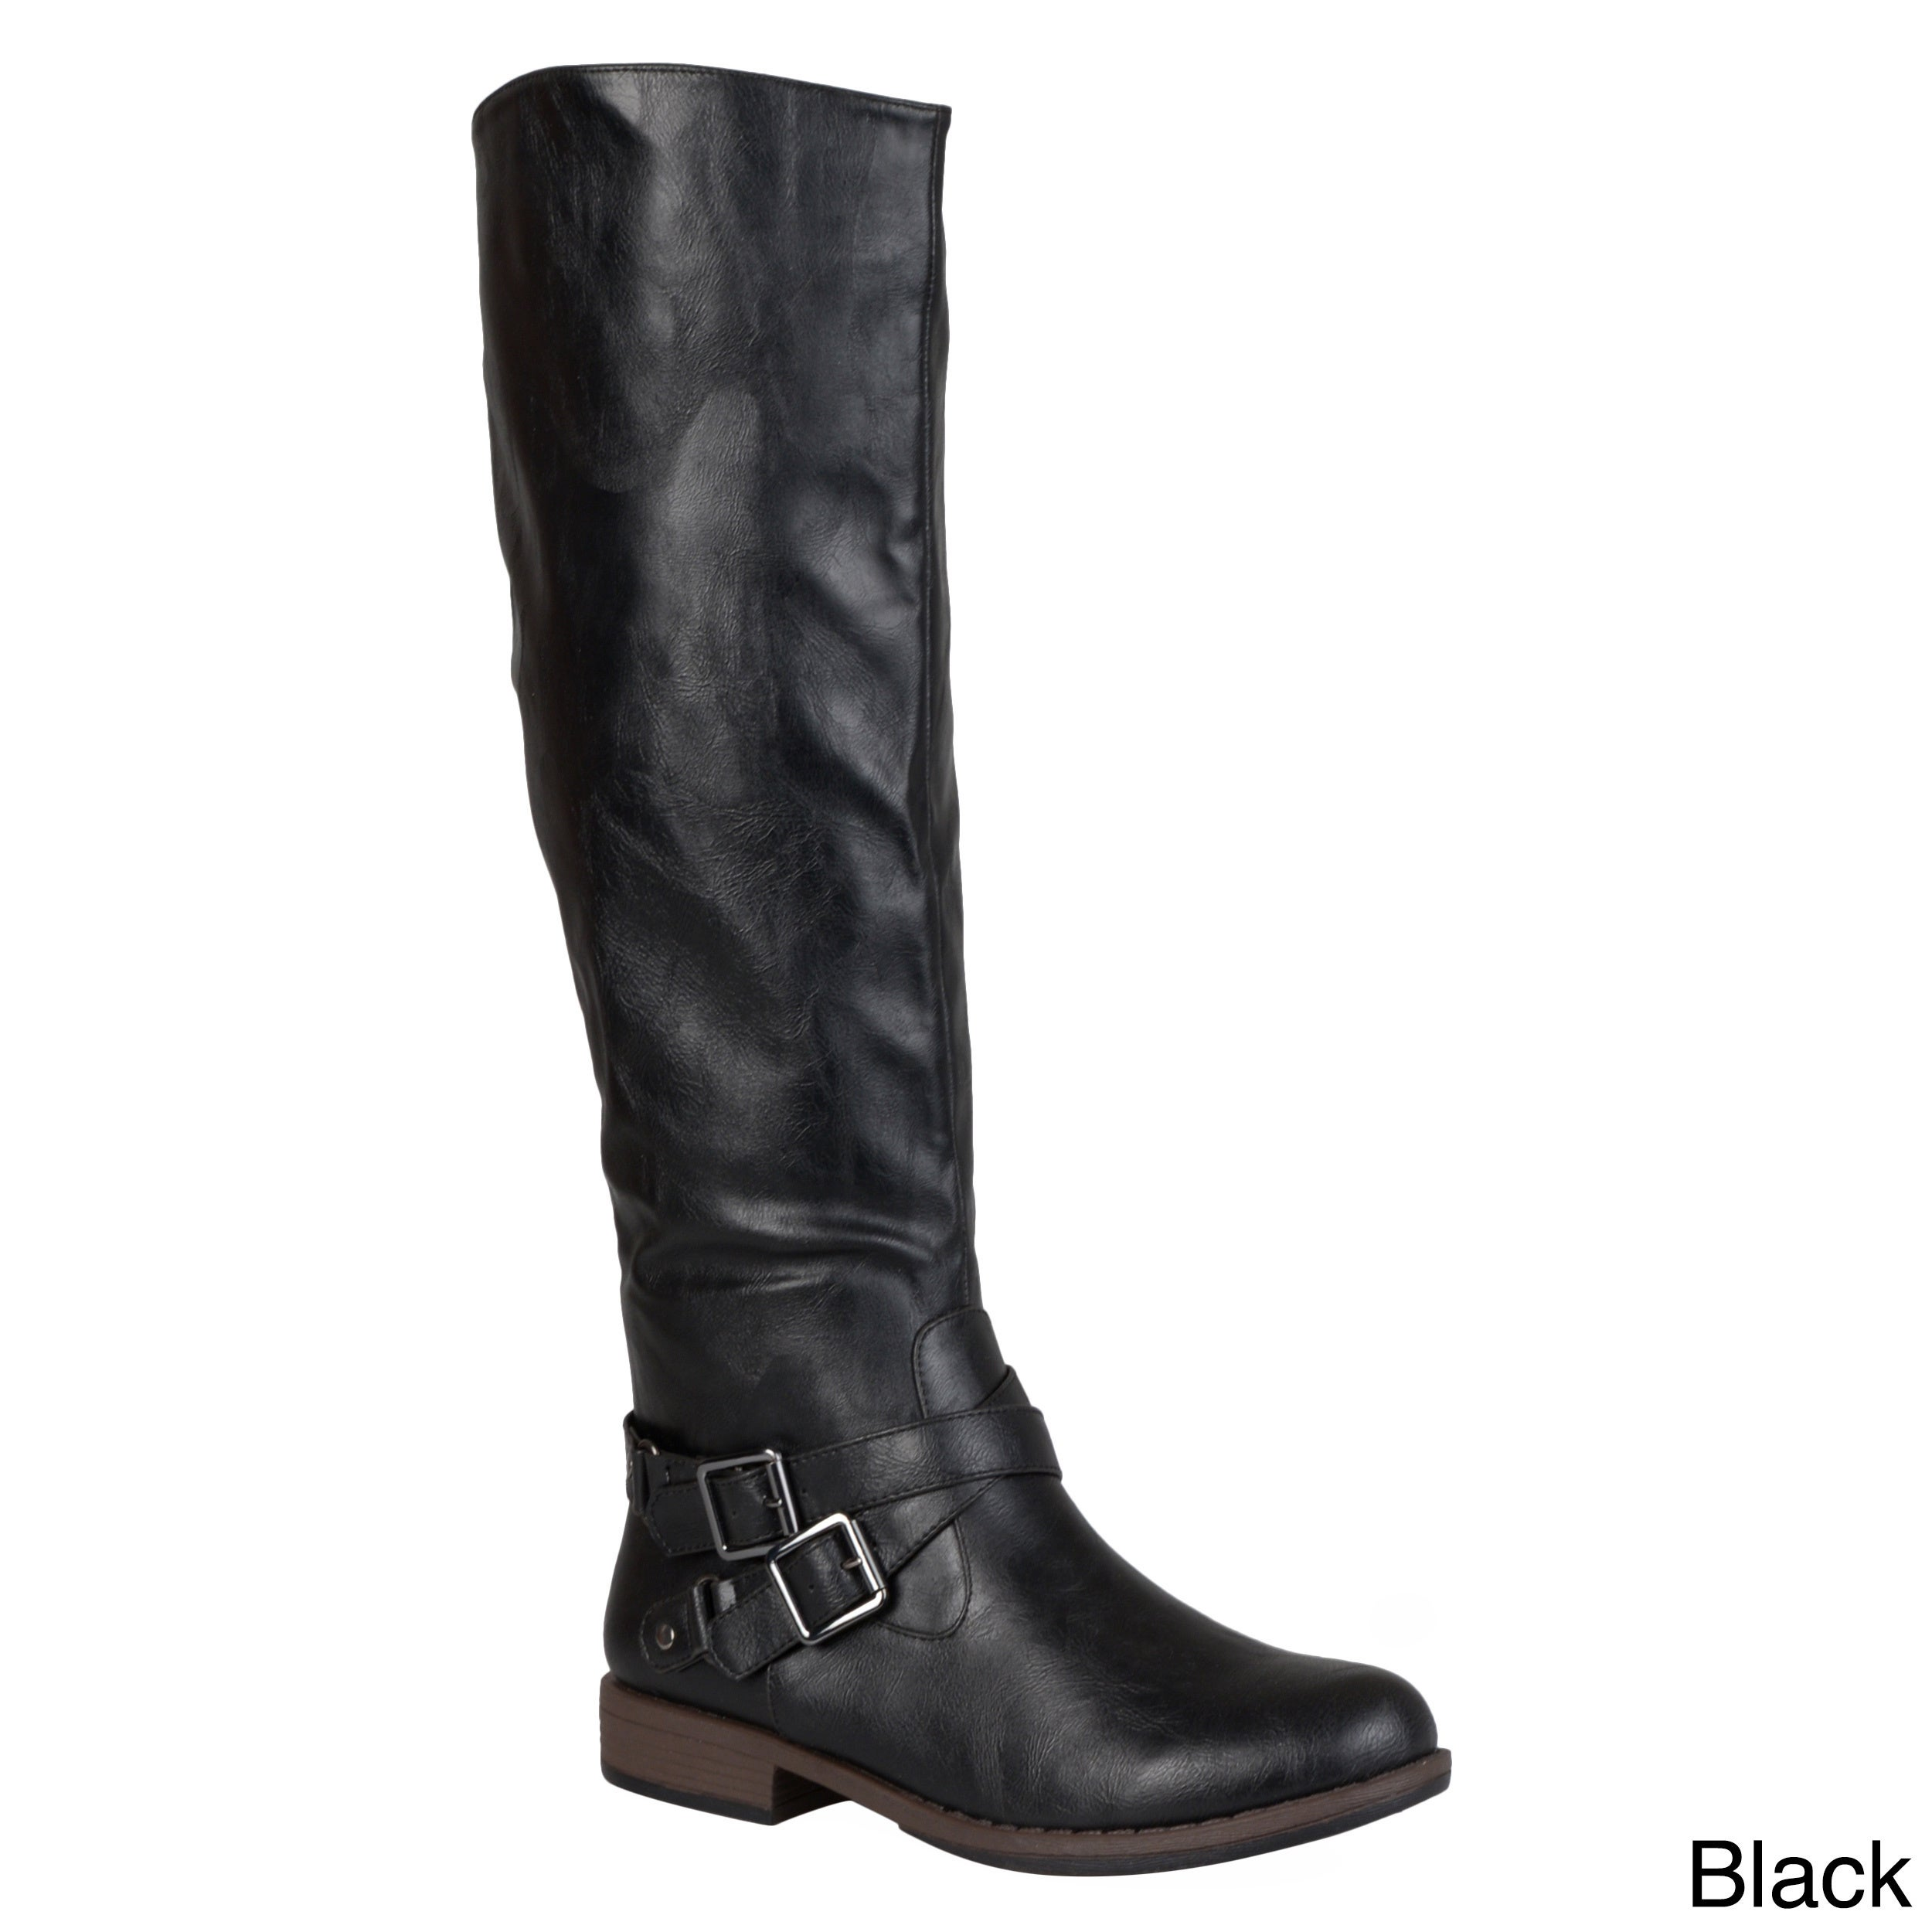 152b1606b977 Shop Journee Collection Women's 'April' Regular and Wide Calf Boot ...